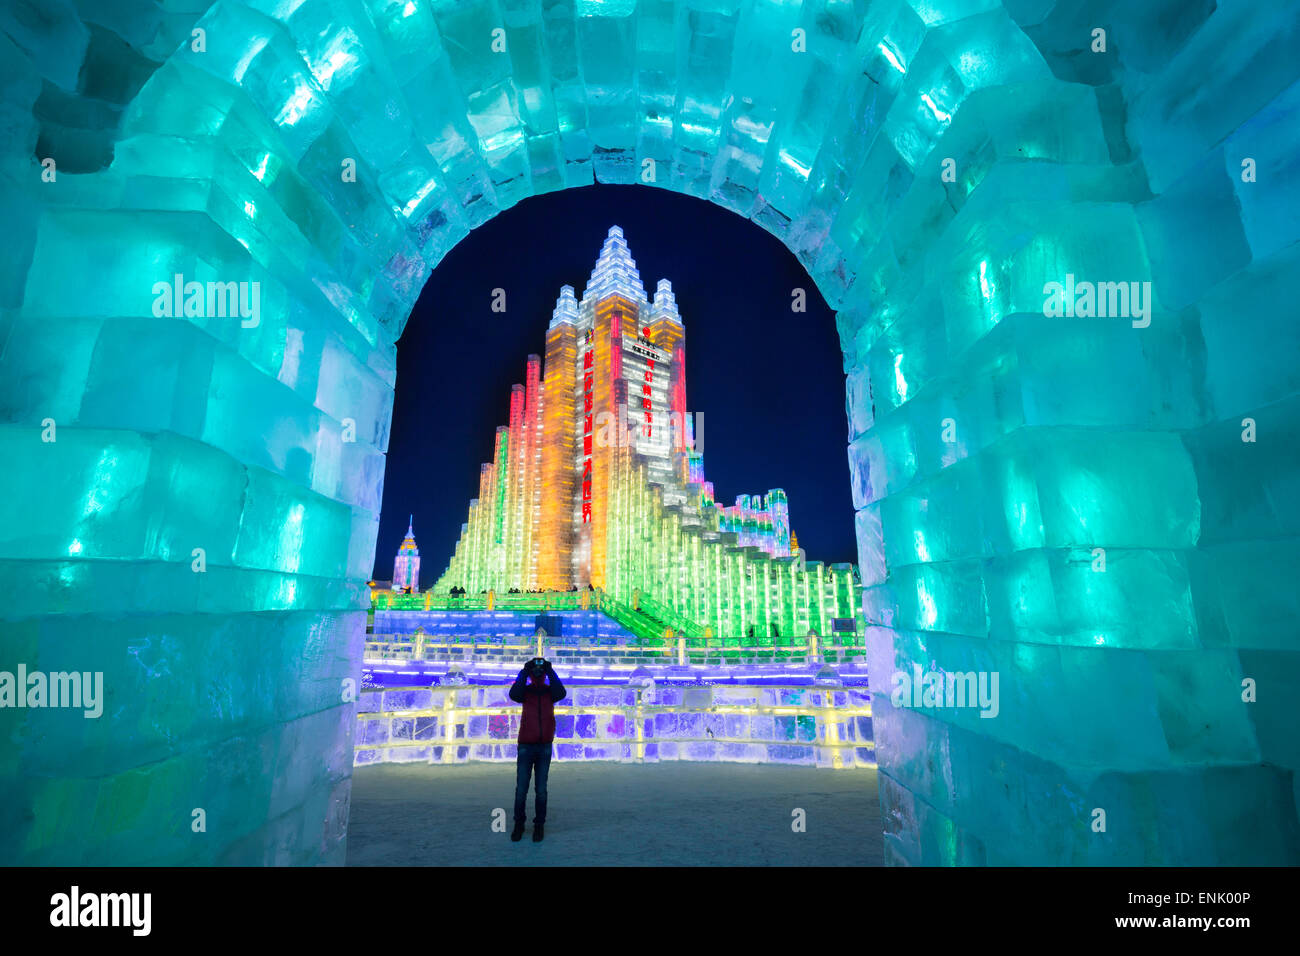 Spectacular illuminated ice sculptures at the Harbin Ice and Snow Festival in Harbin, Heilongjiang Province, China, Stock Photo